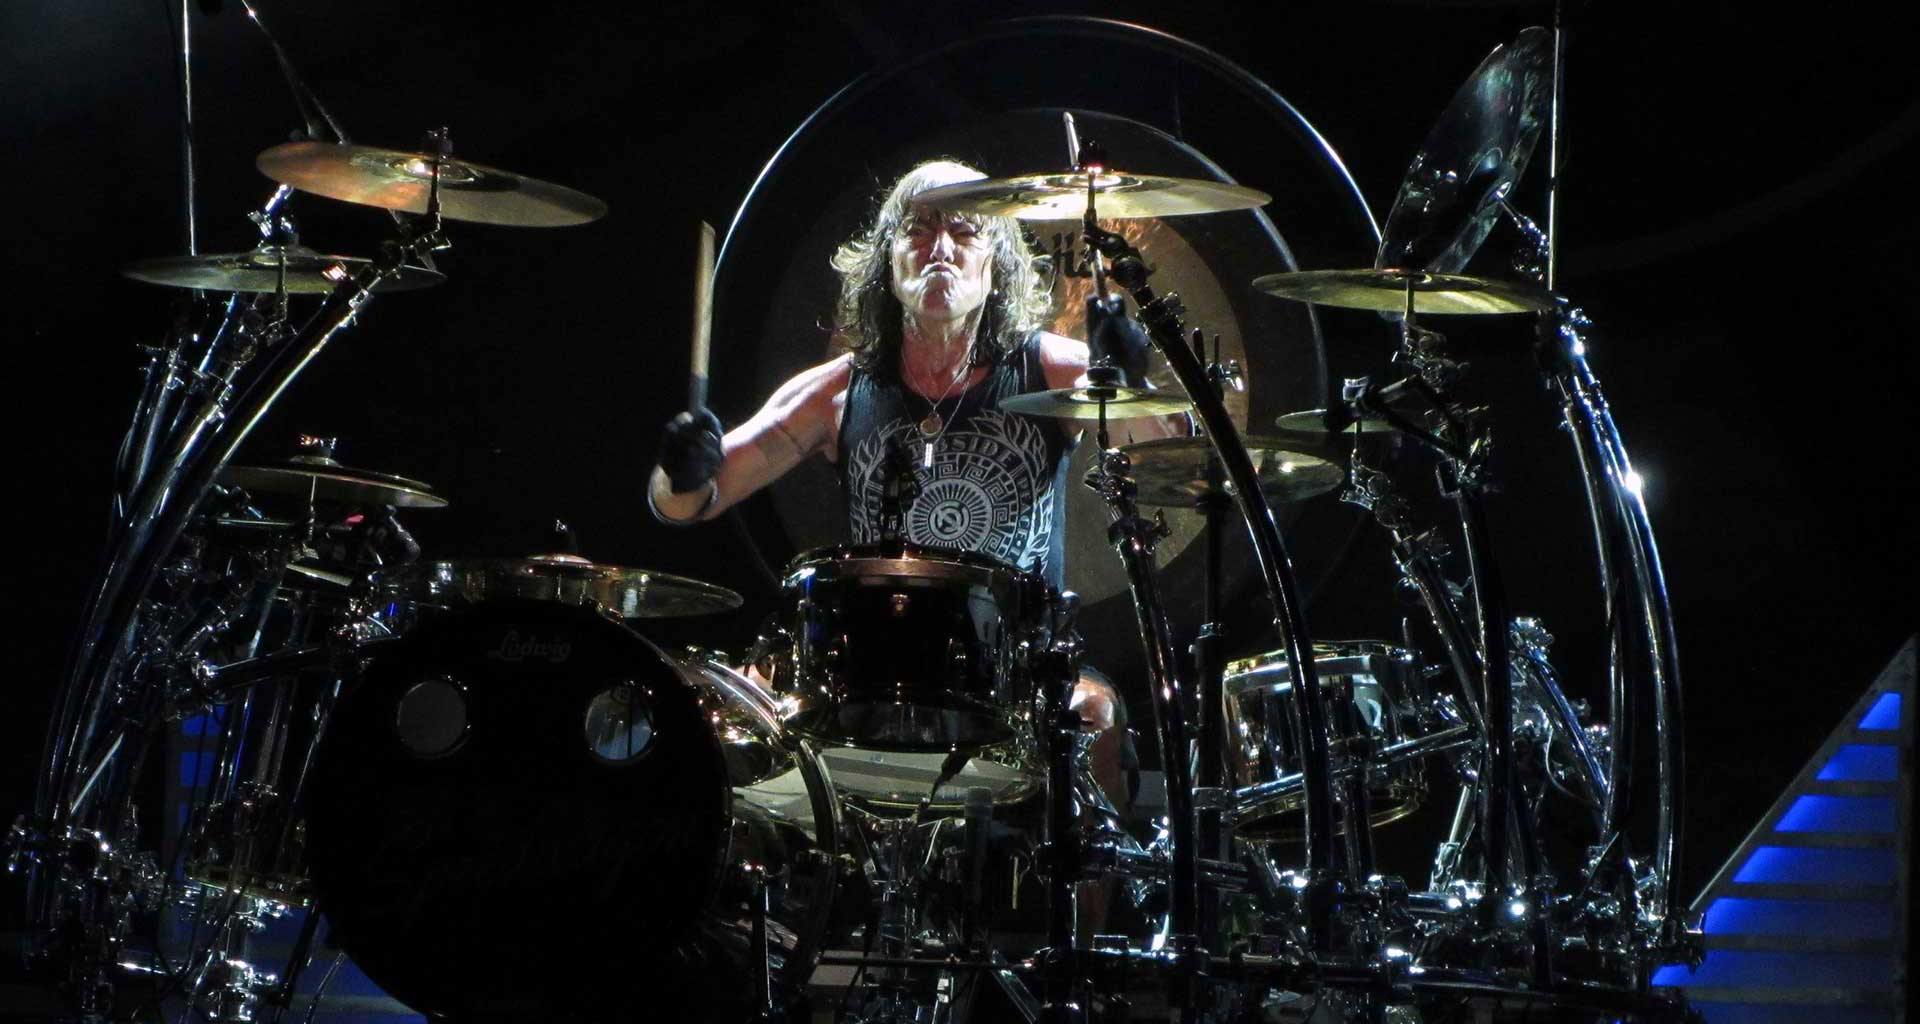 REO Speedwagon's Brian Hitt plays Drums